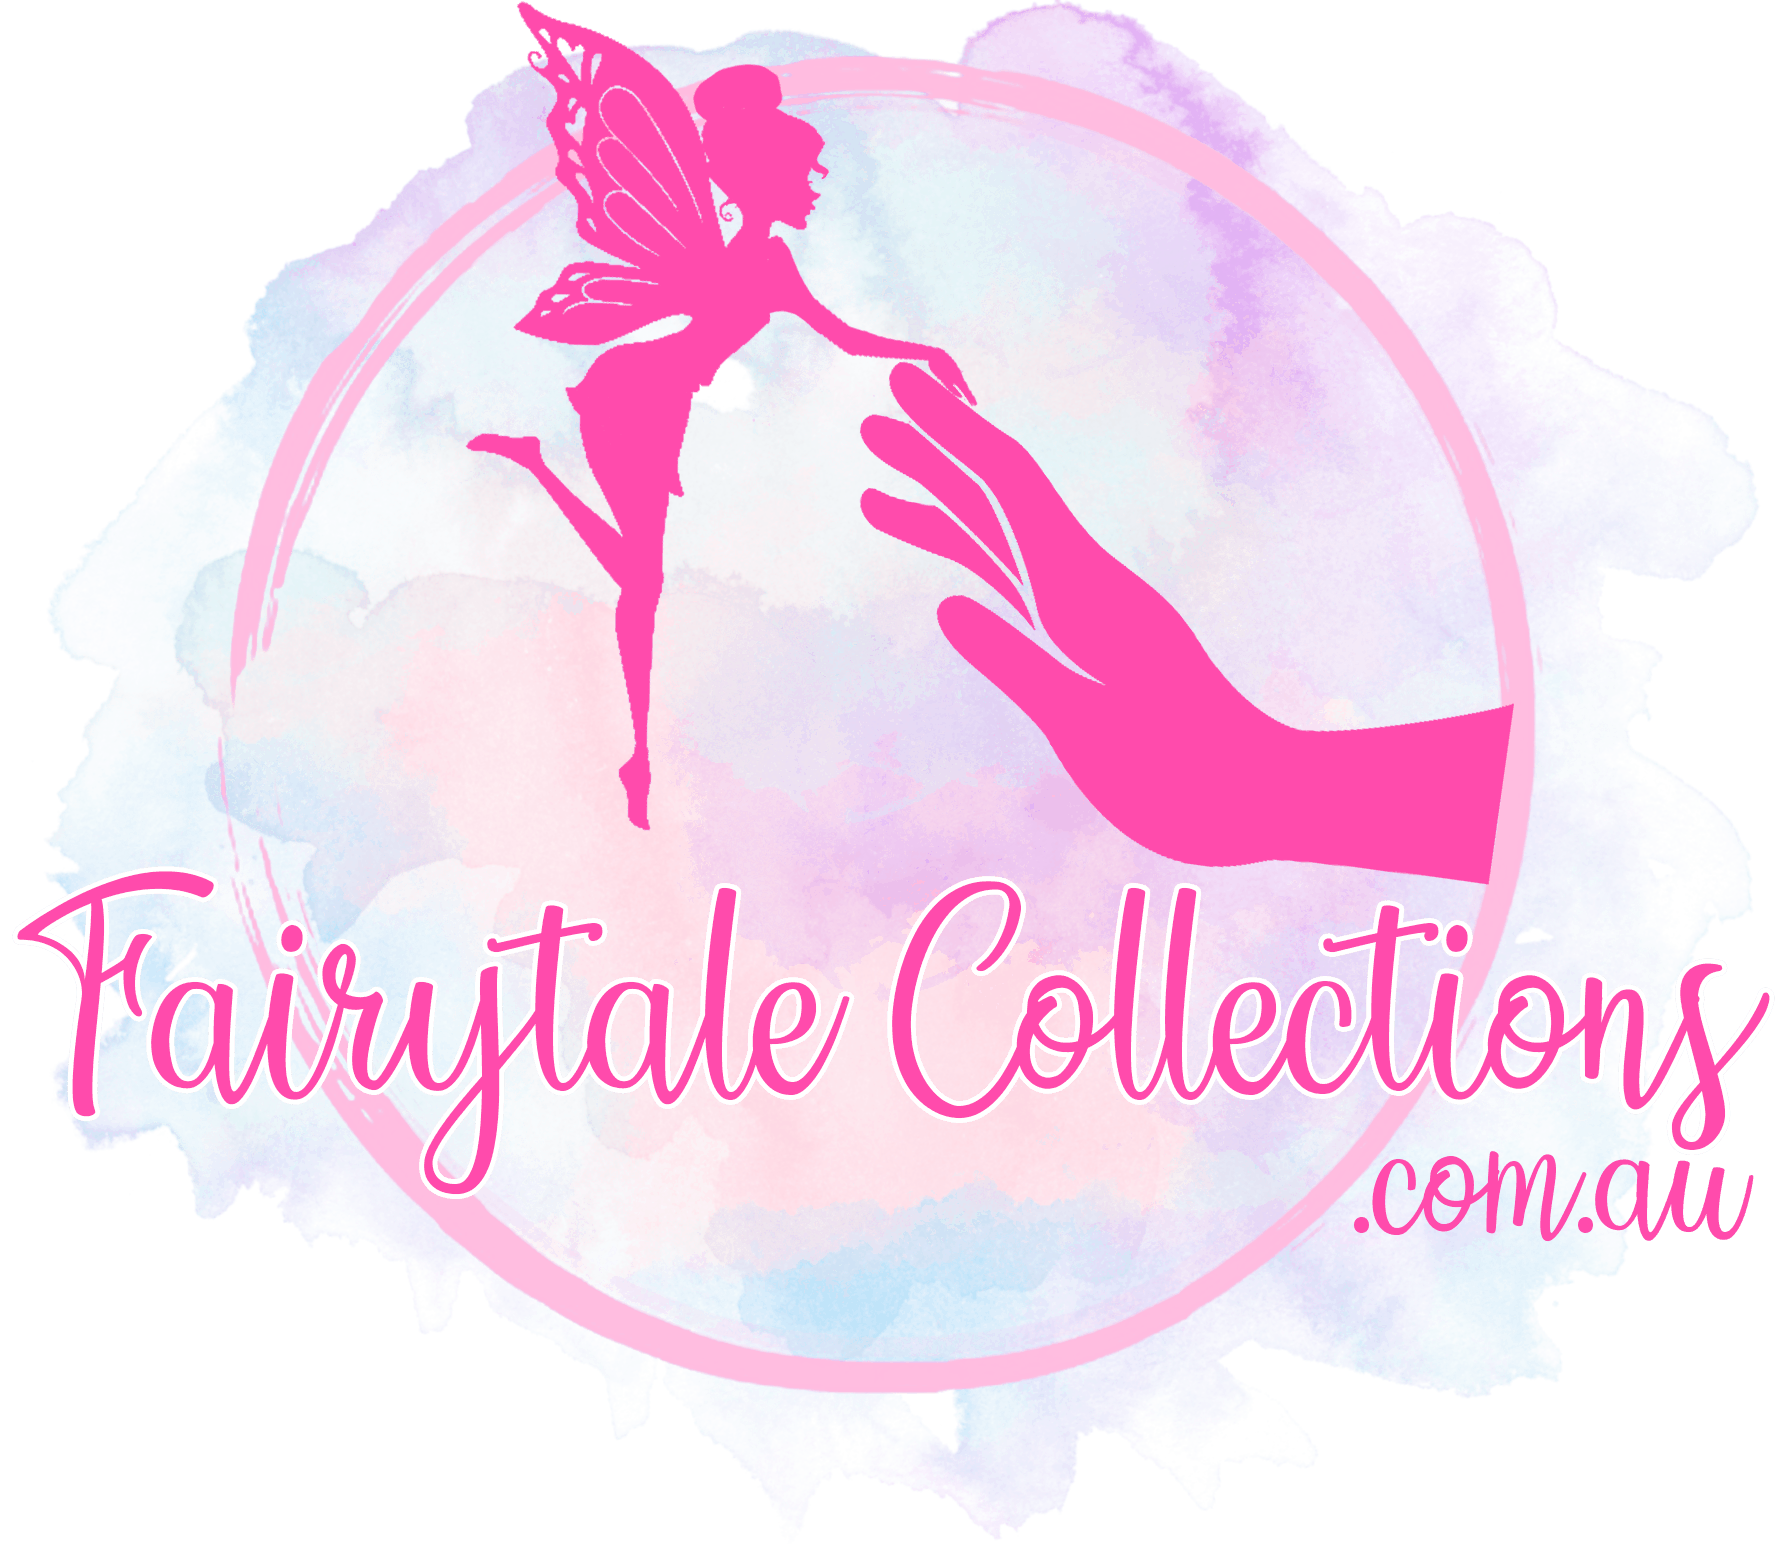 Fairytale Collections